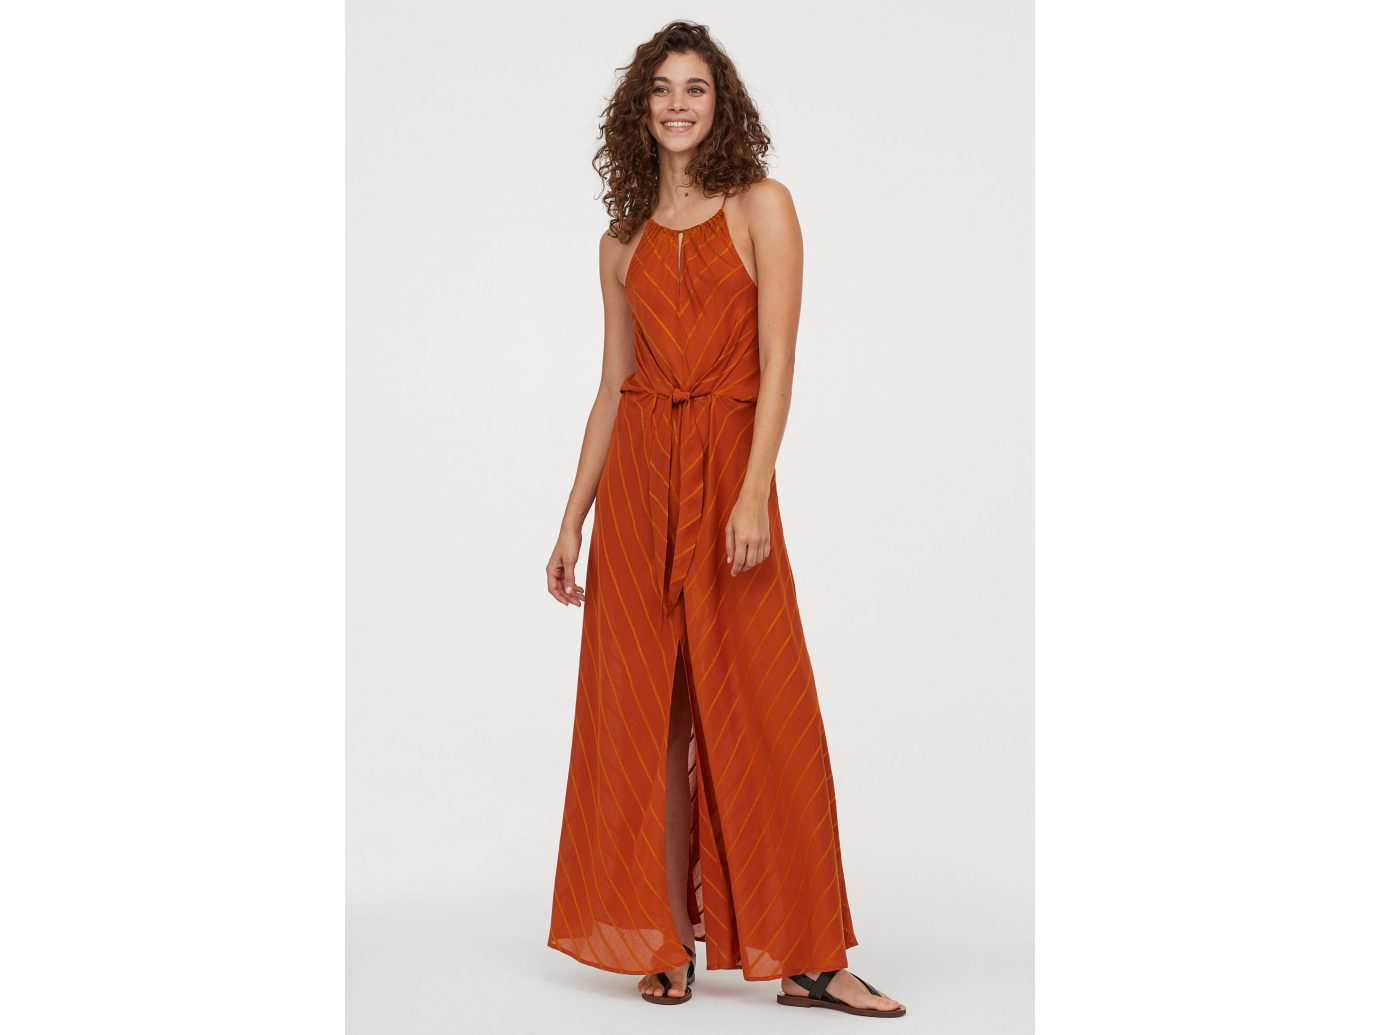 H&M's Conscious striped maxi dress in red and orange